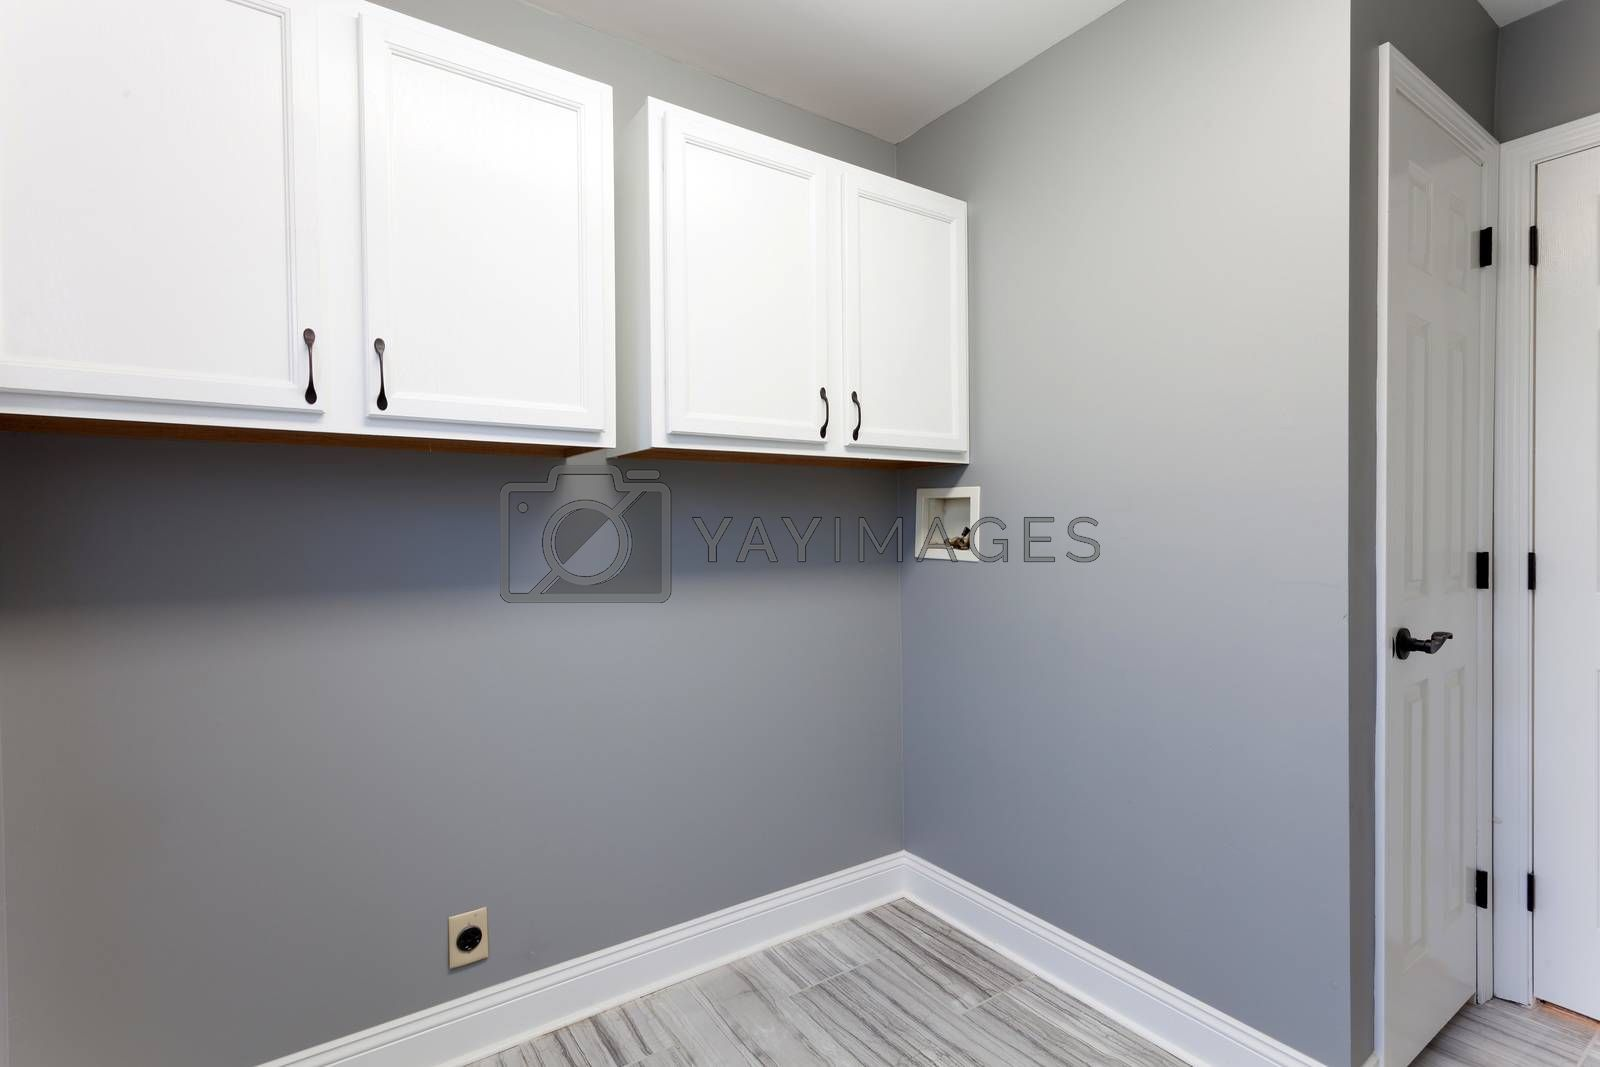 Home Laundry Room Interior by graficallyminded